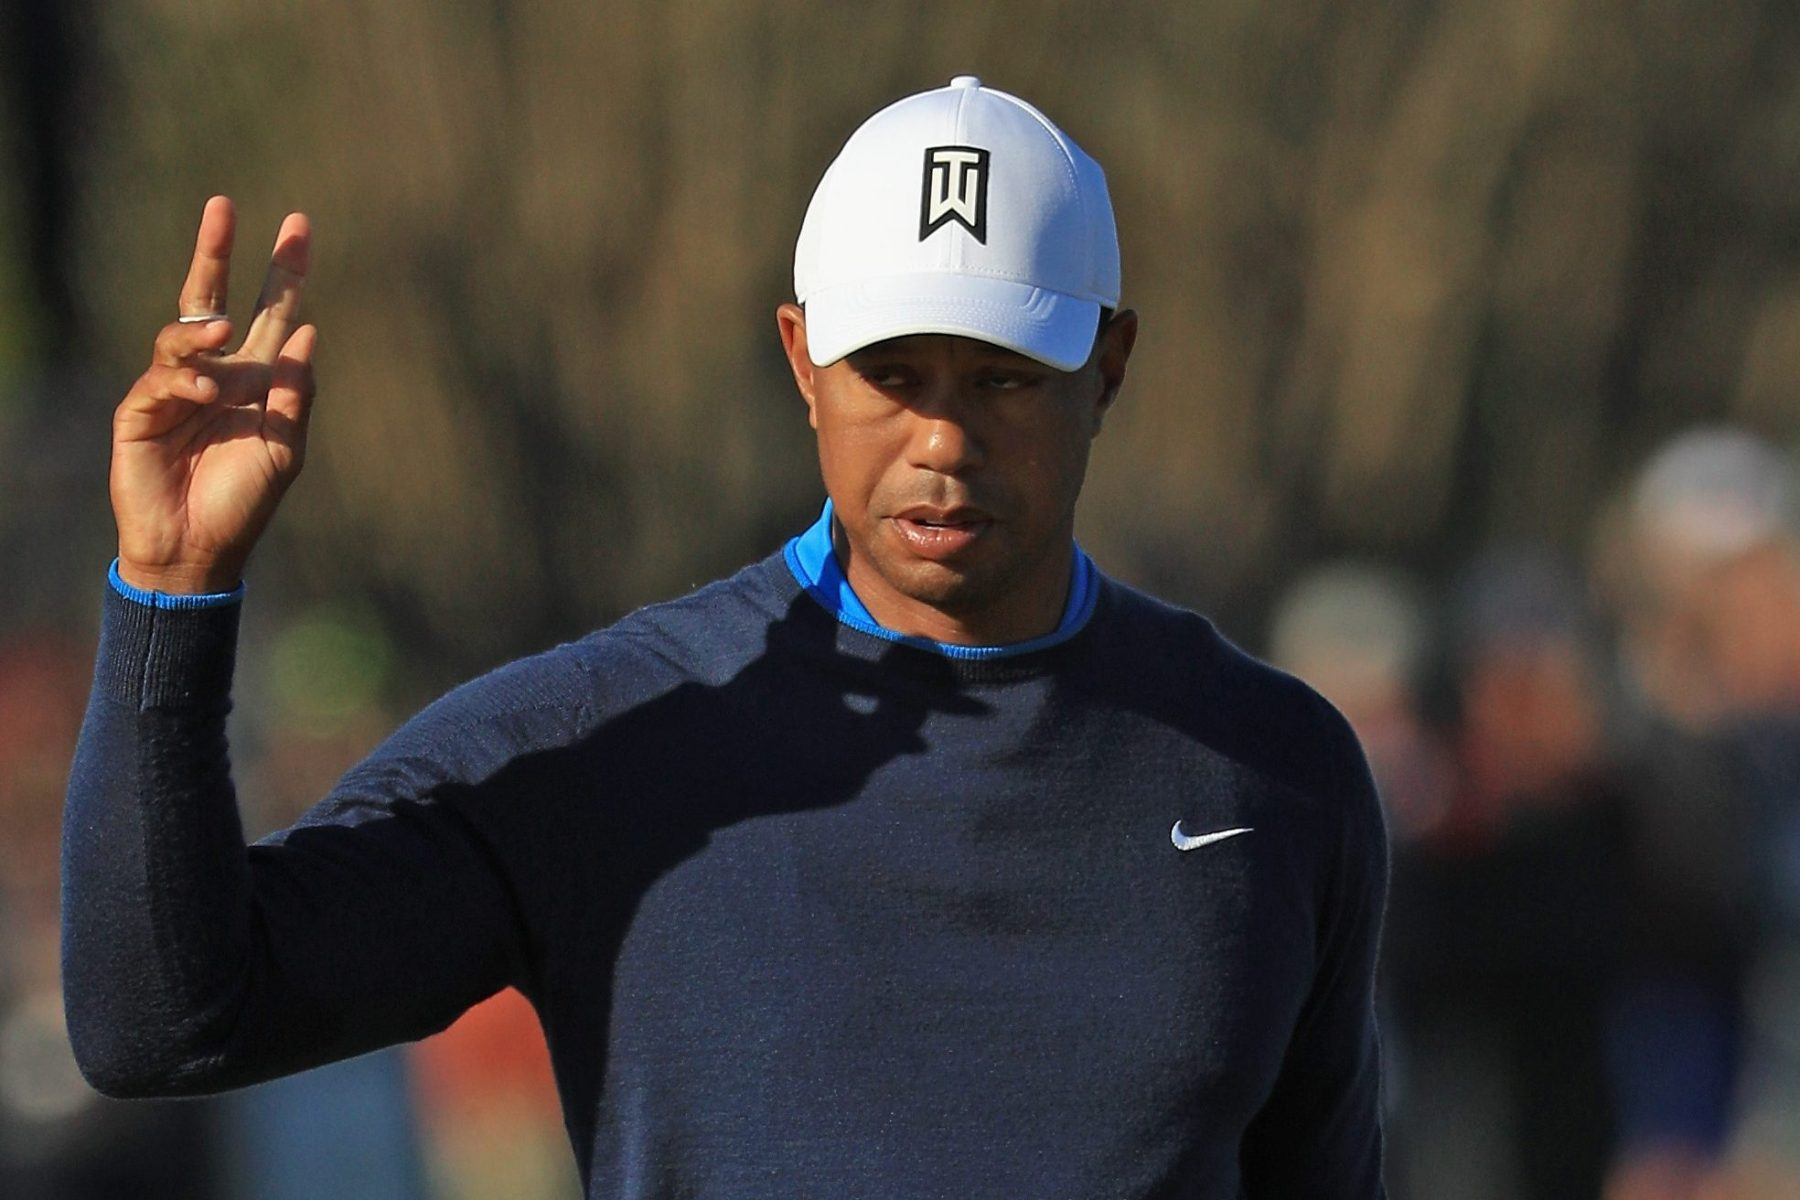 Tiger Woods in 2018 in Orlando, Florida. (Photo by Mike Ehrmann/Getty Images)